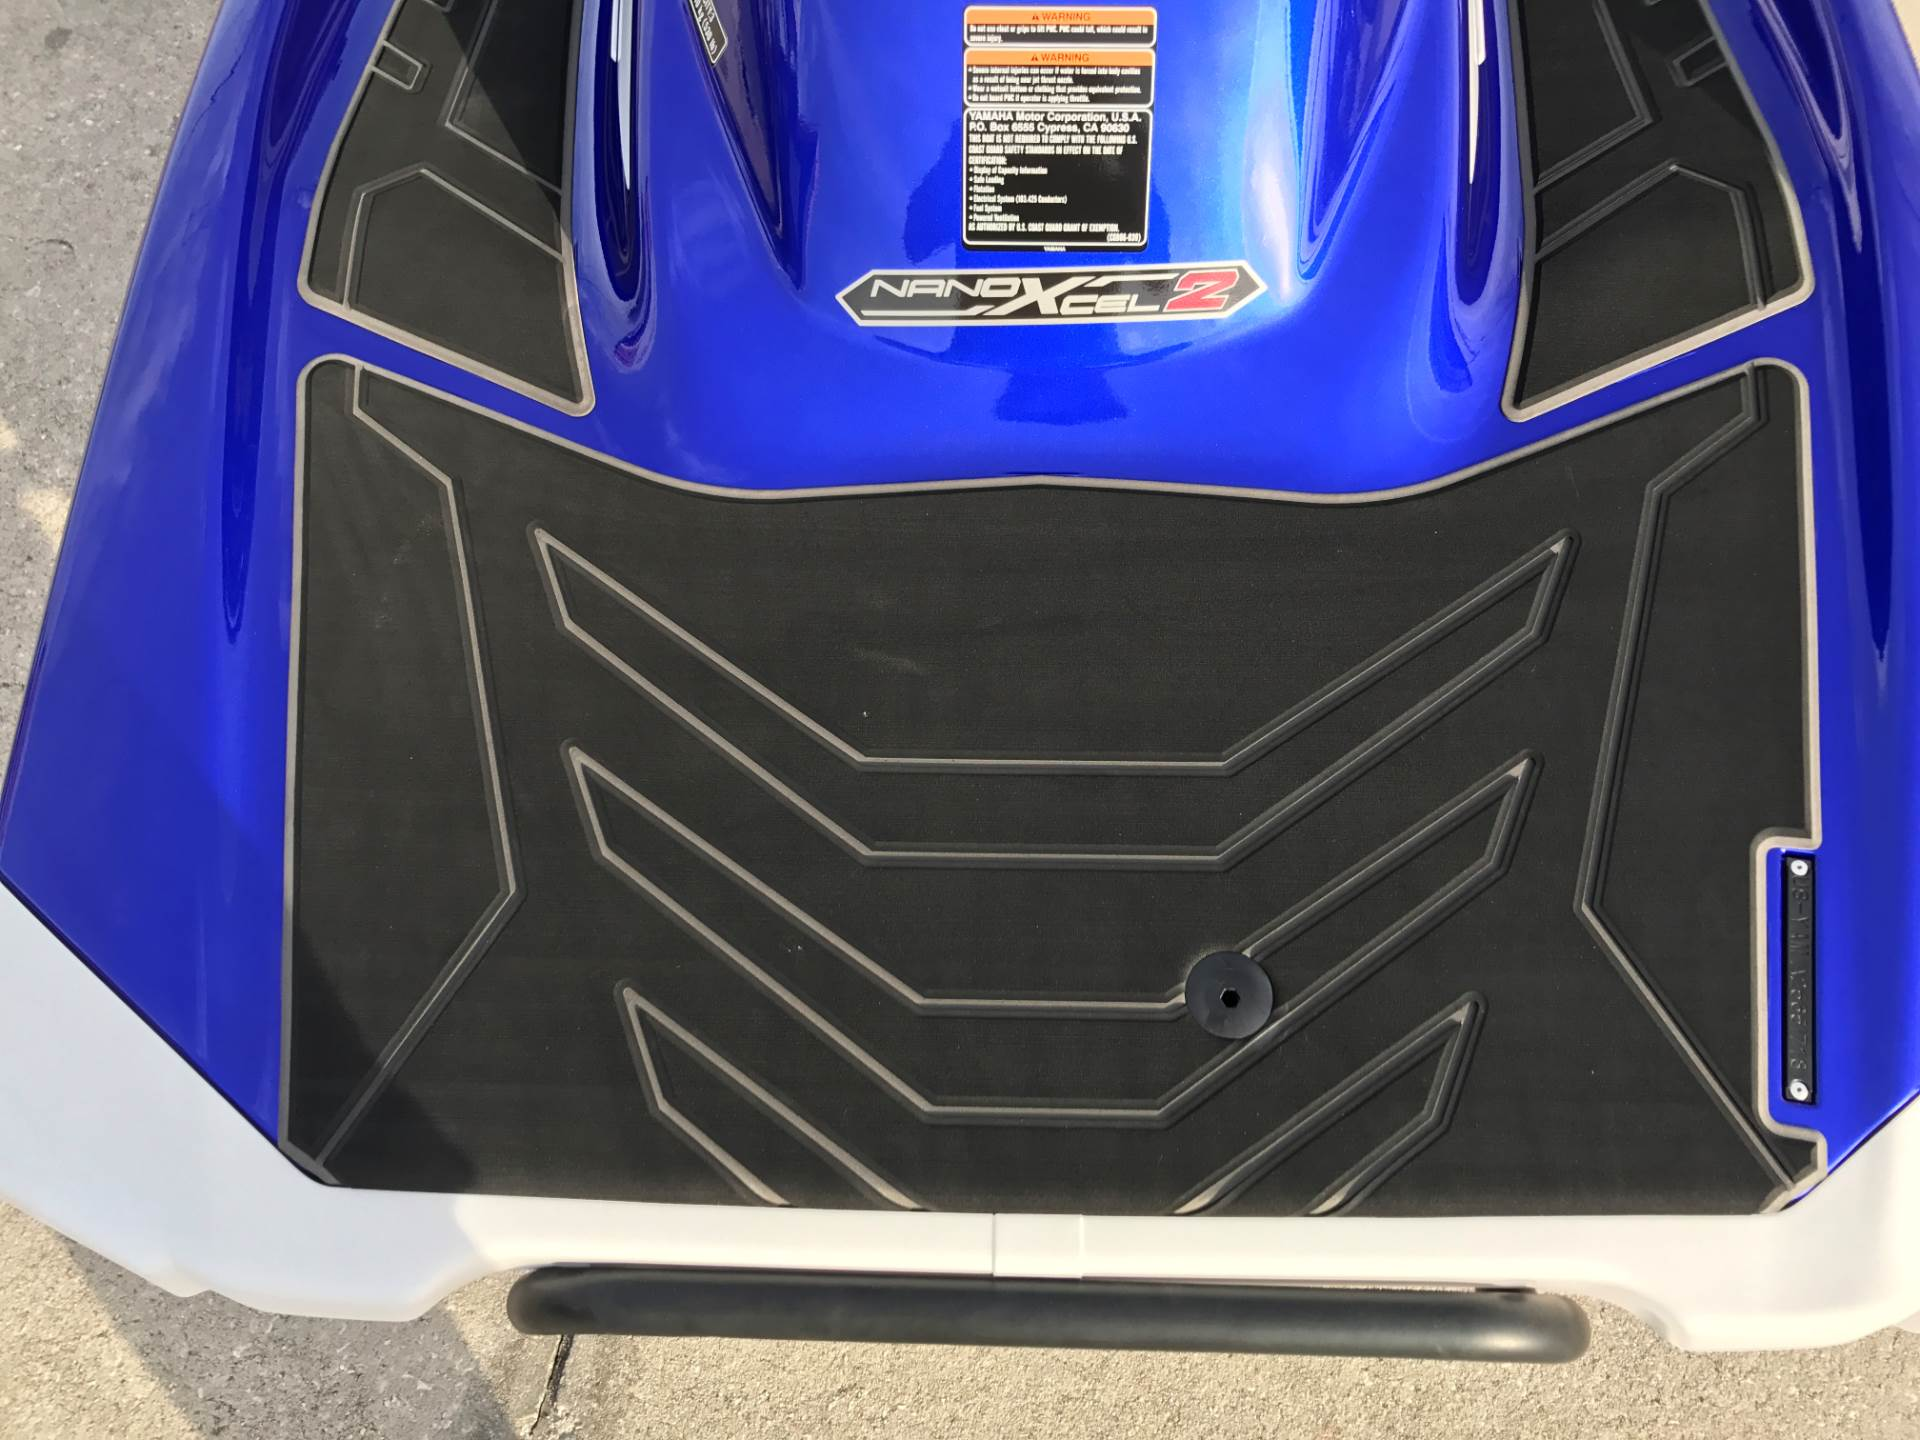 2018 Yamaha GP1800 in Orlando, Florida - Photo 18